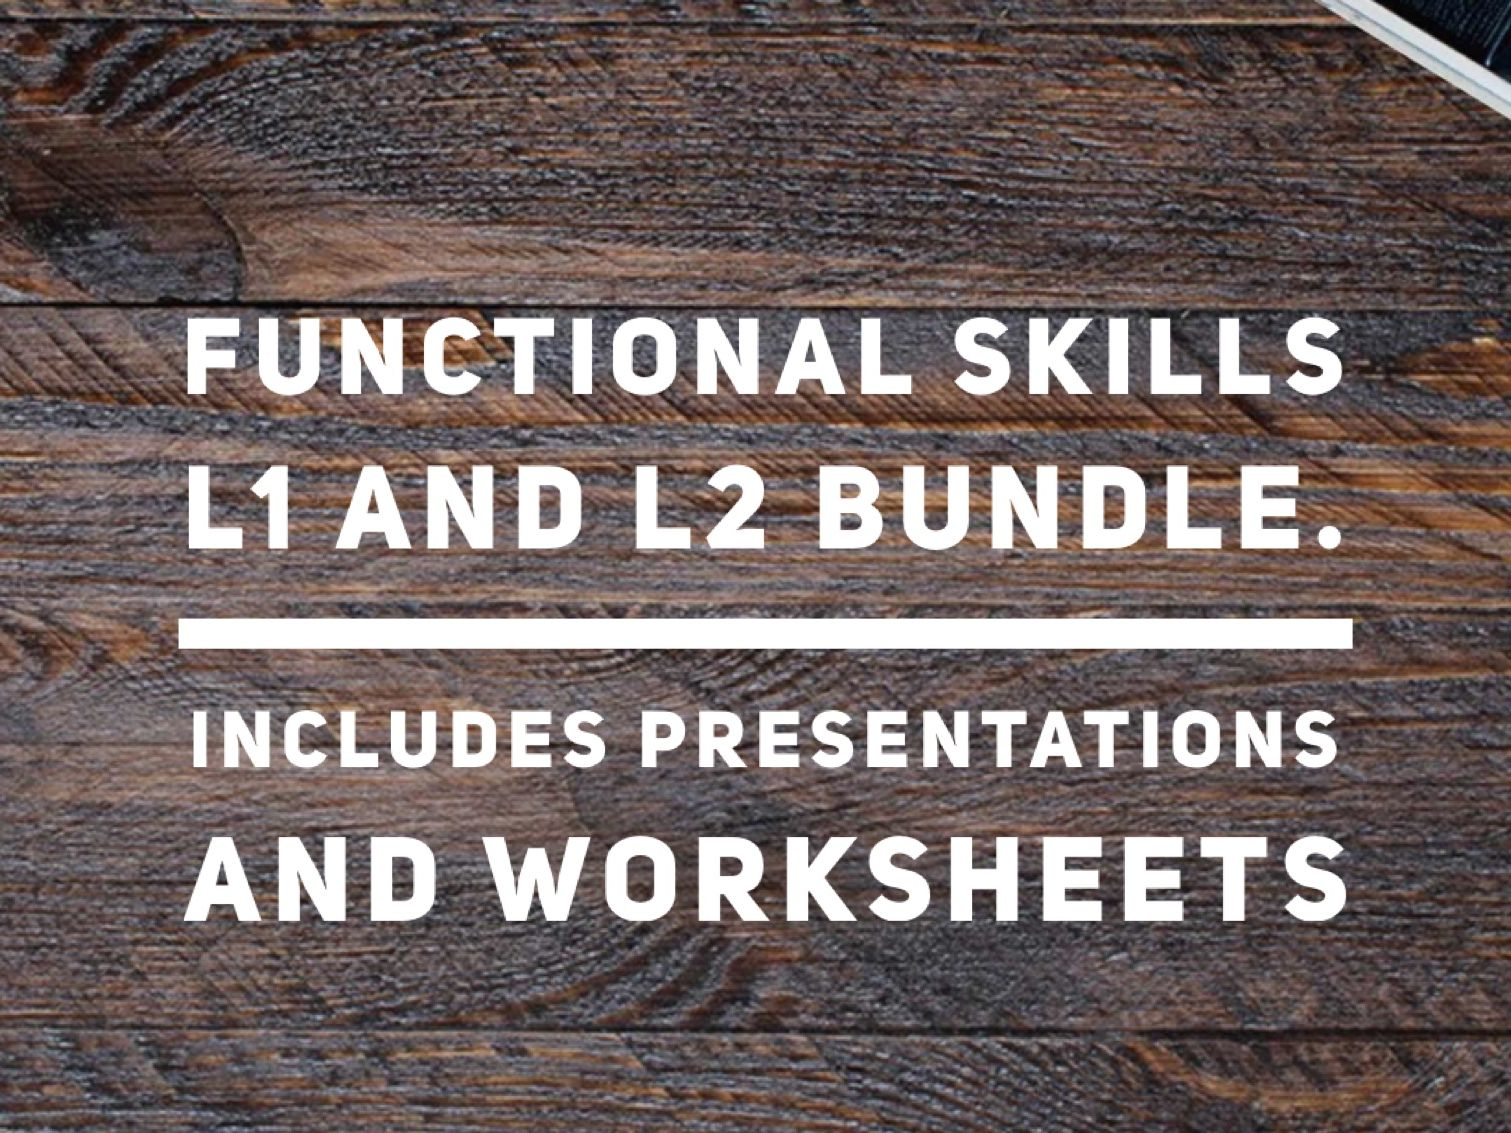 Ict Functional Skills Bundle L1 And L2 By Khedges123